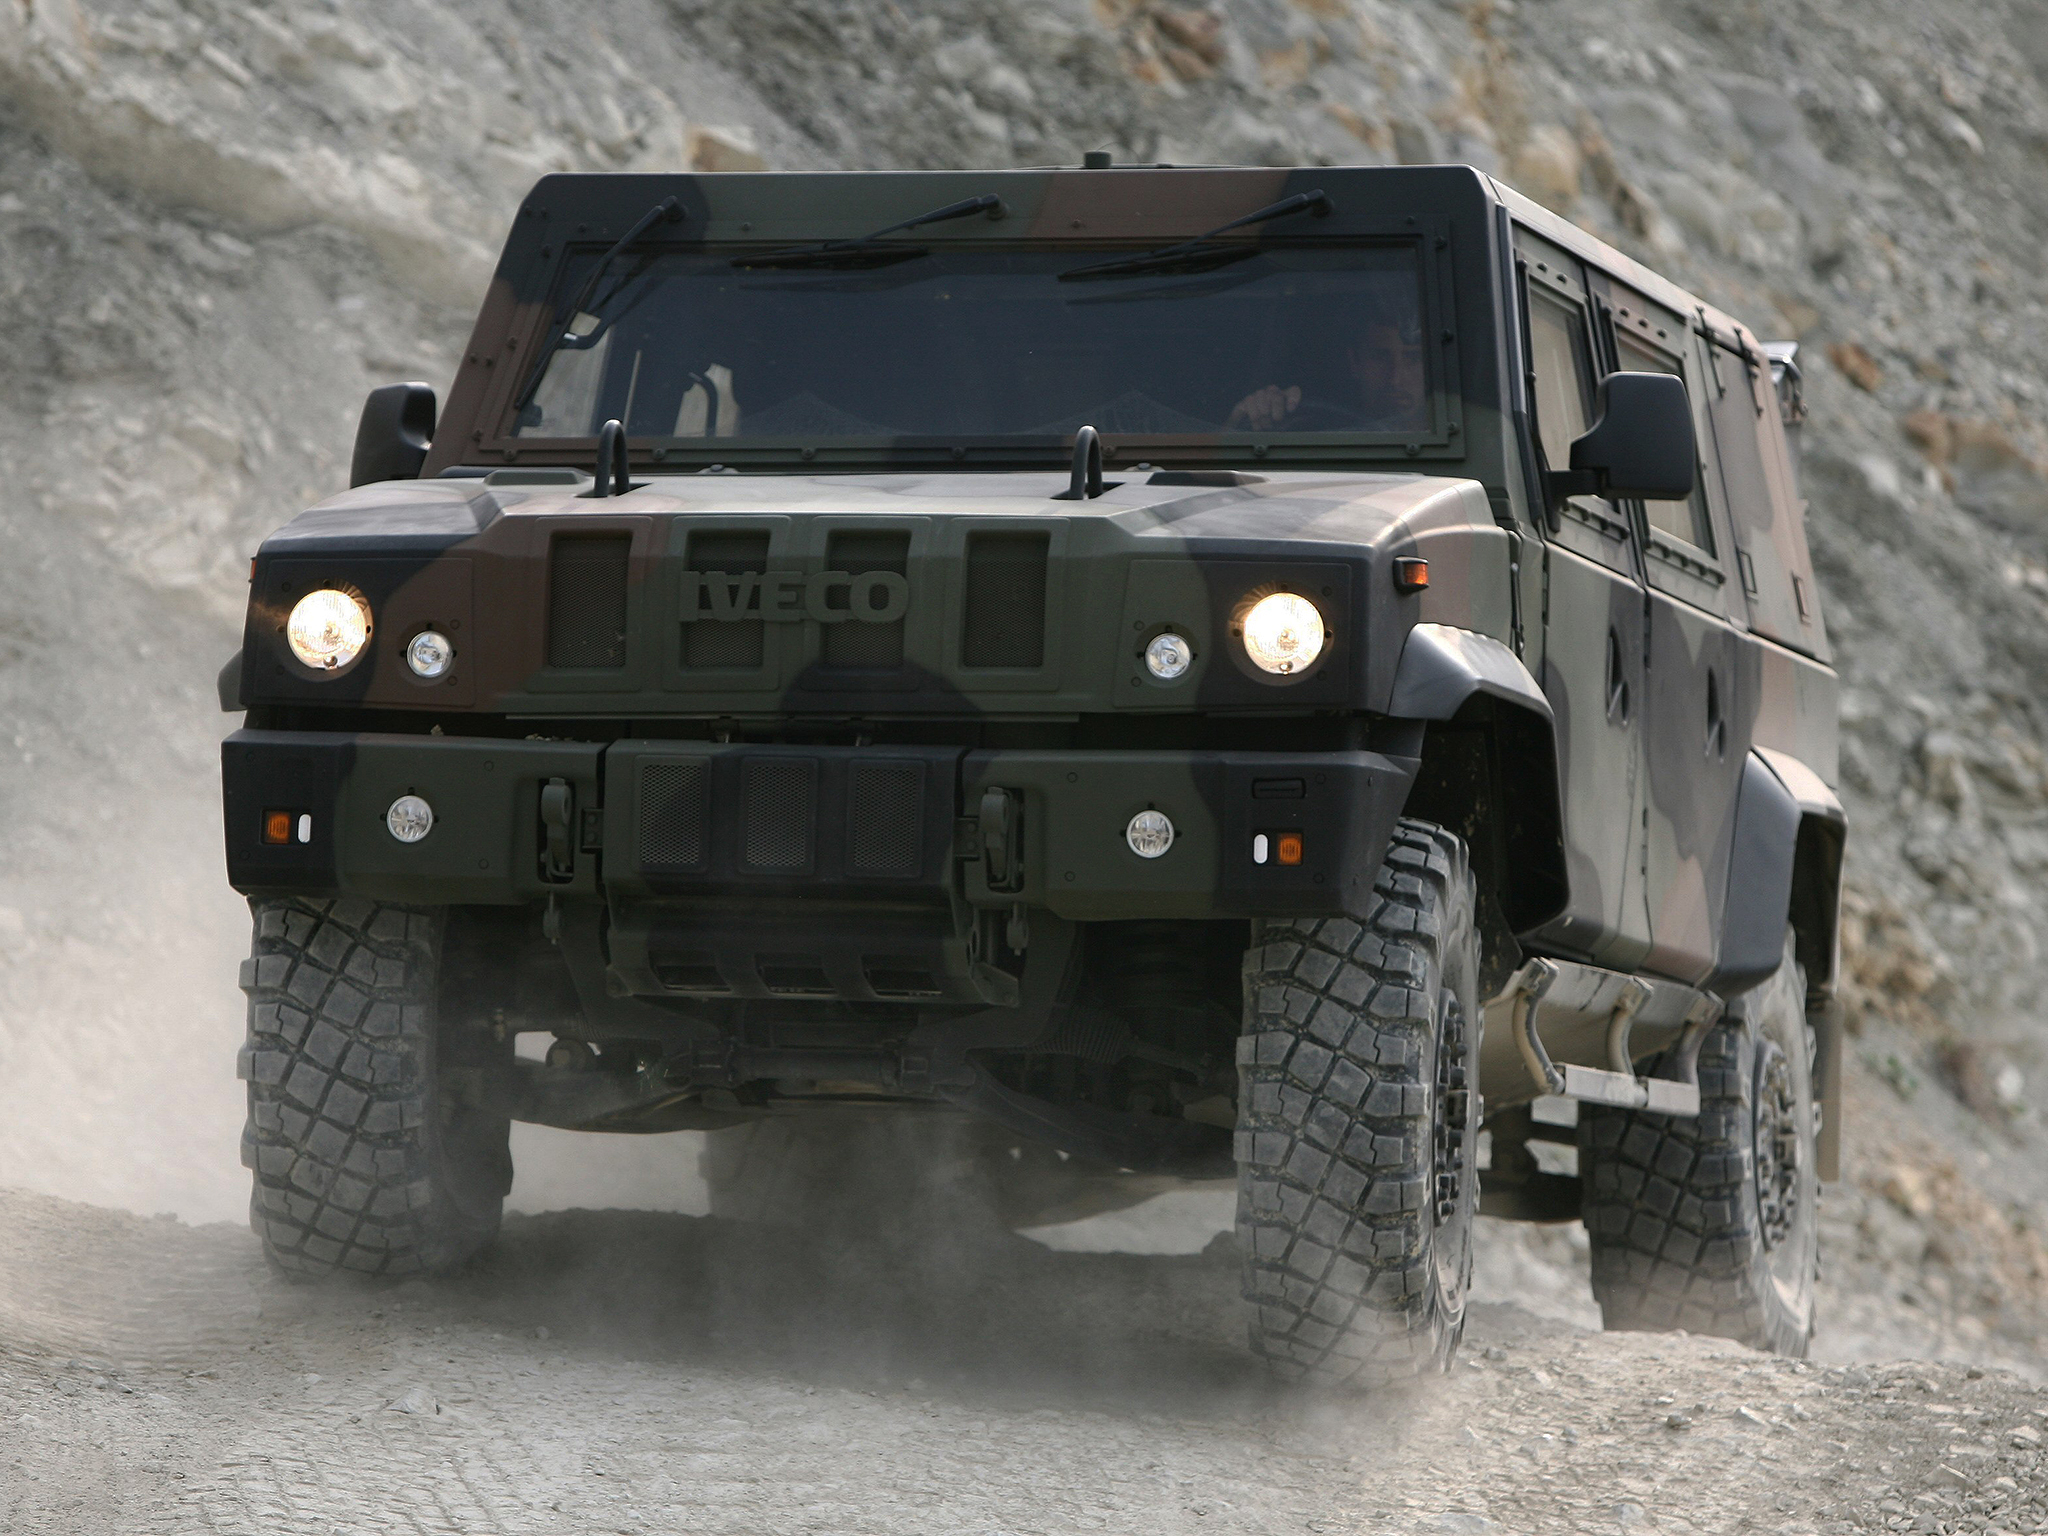 Iveco lince photo - 6